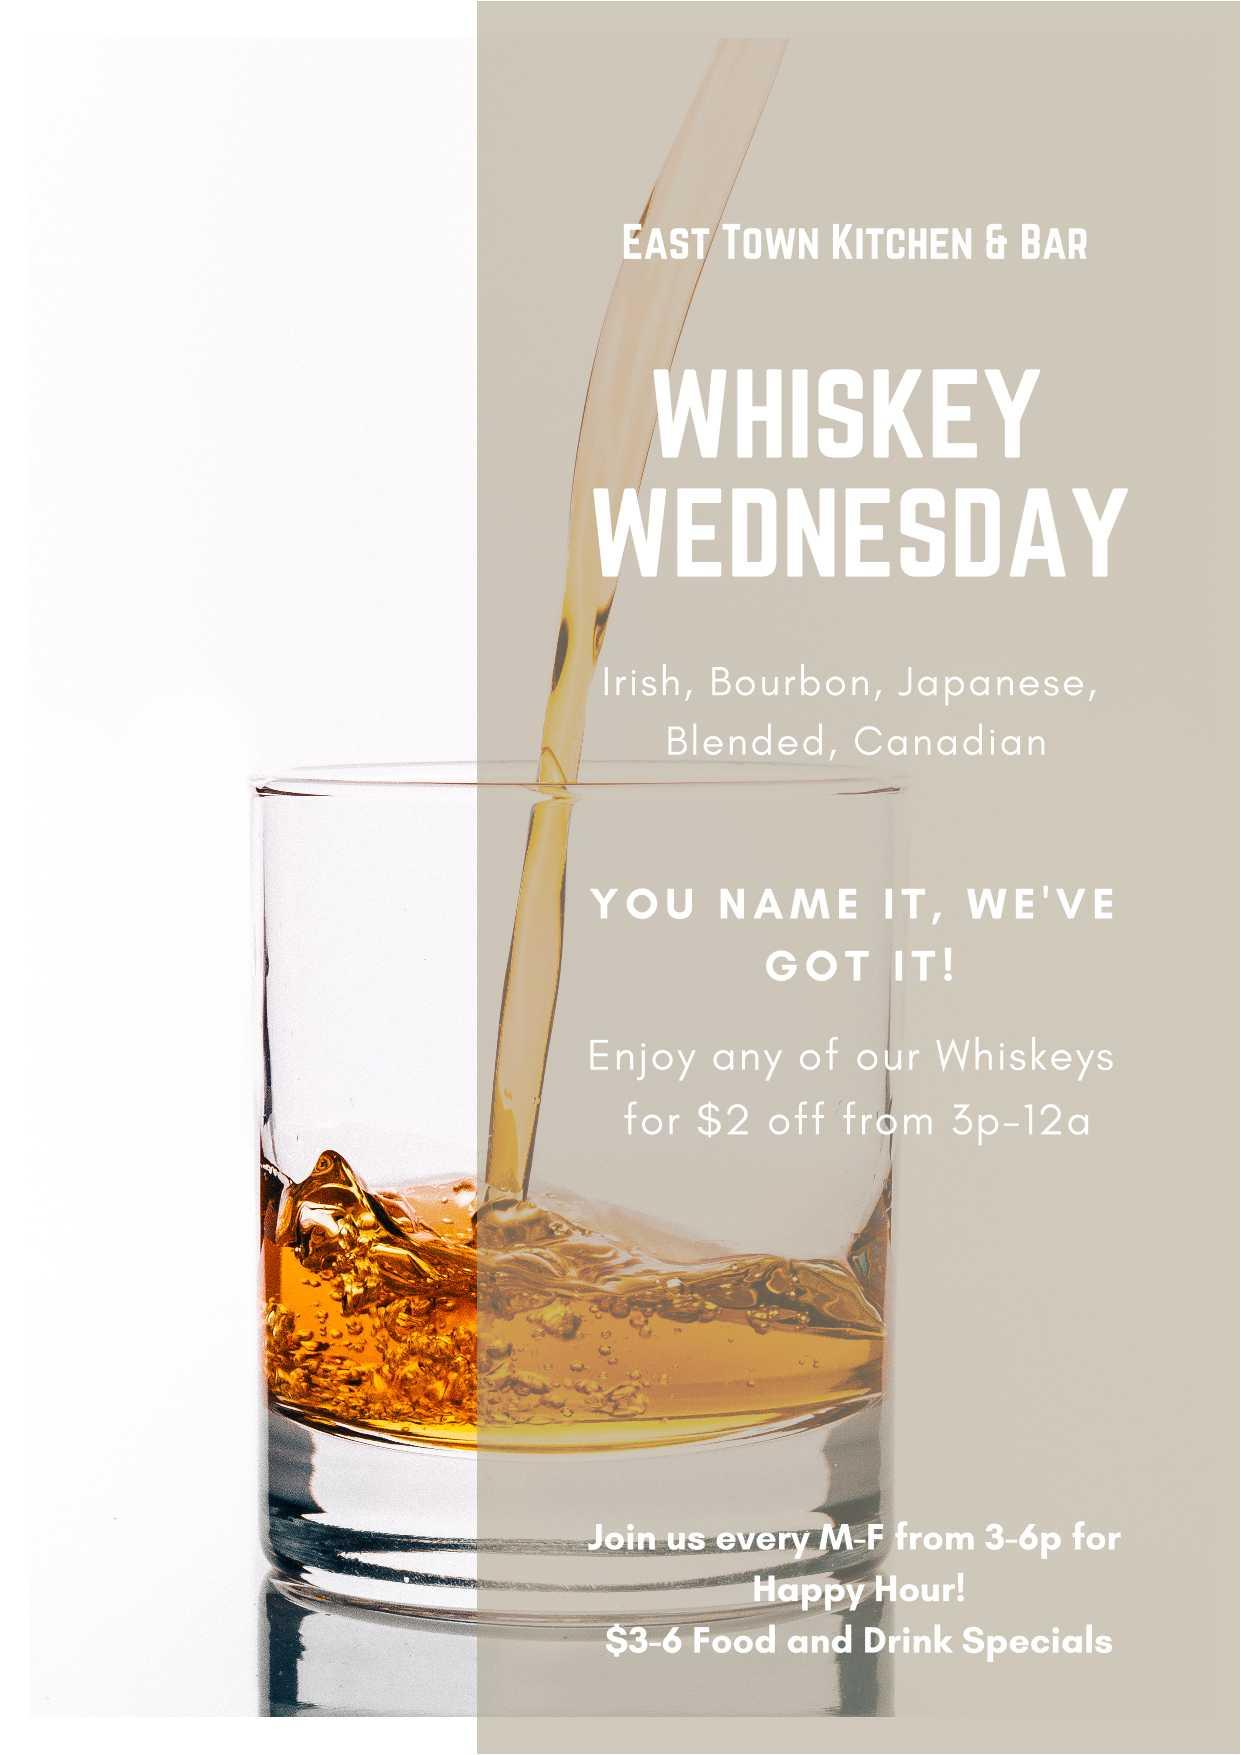 Whiskey Specials on Wednesday